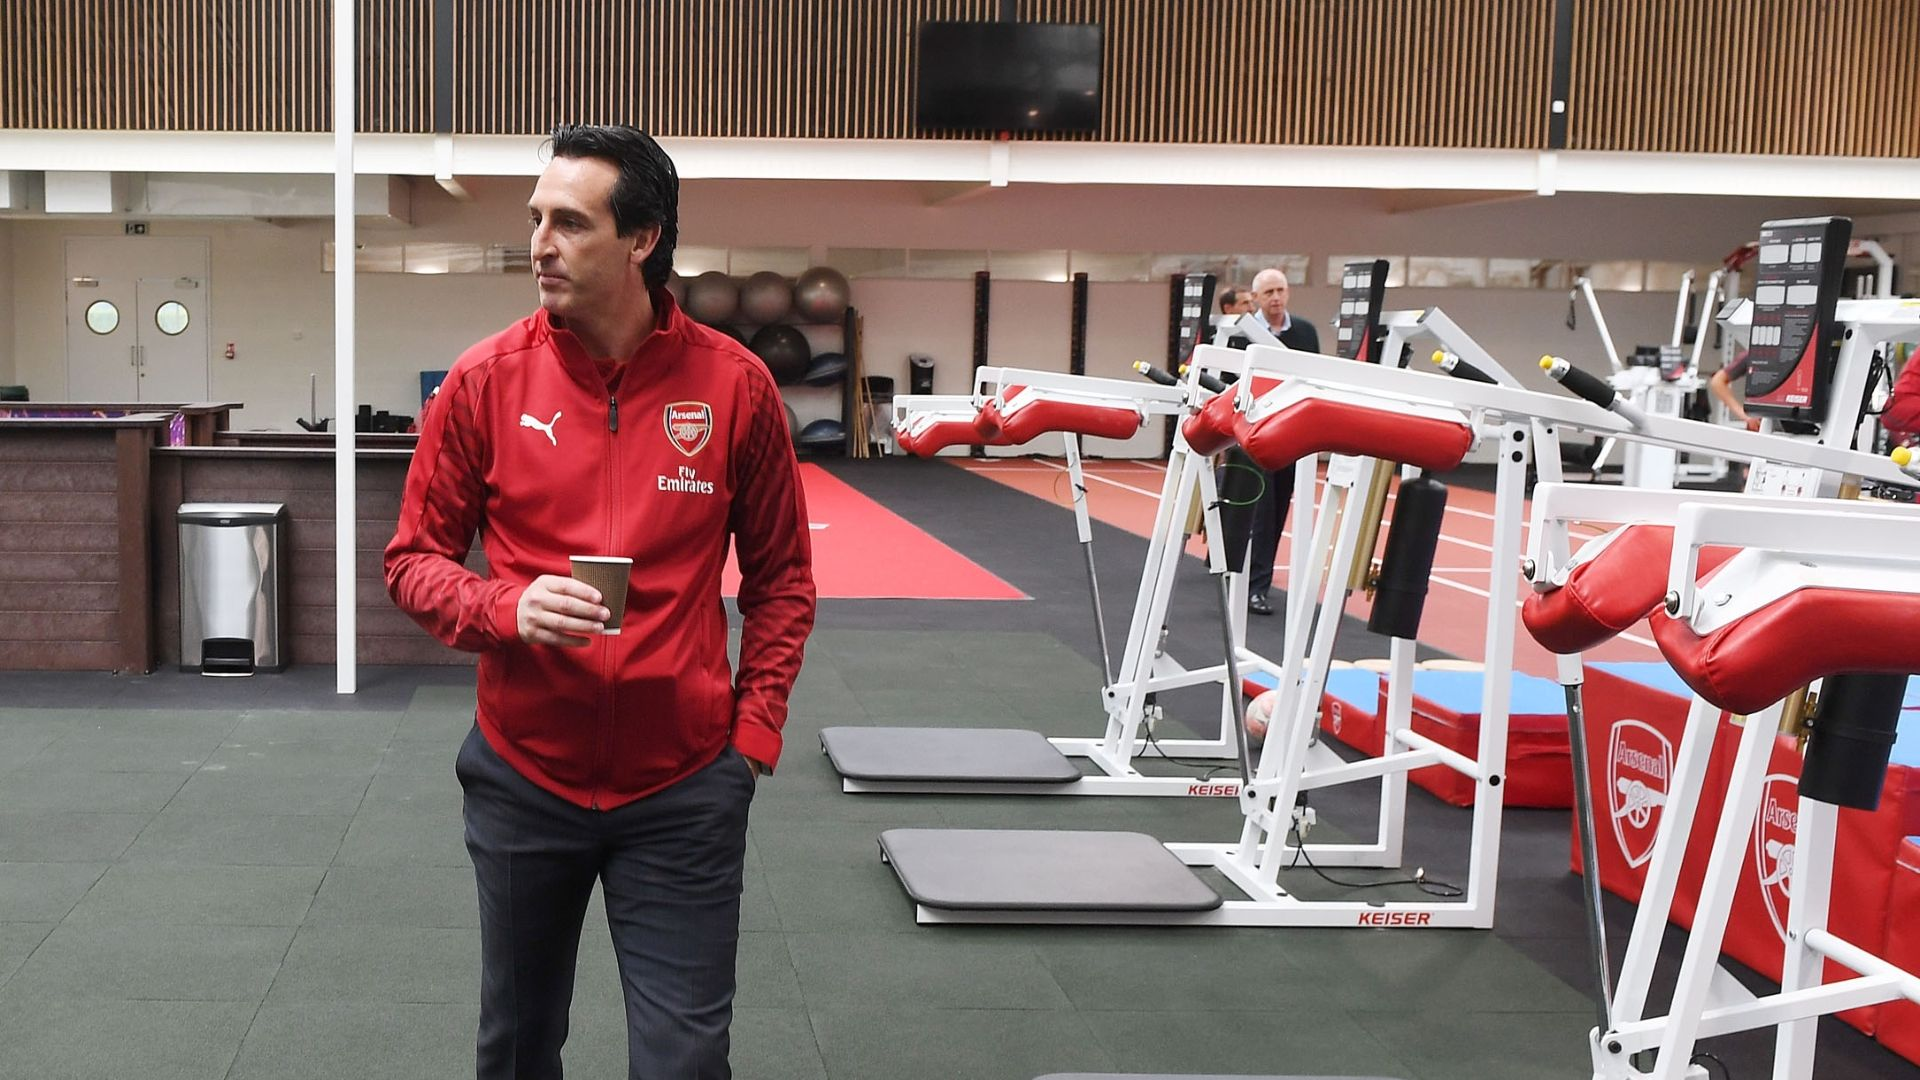 Emery: Leno to battle Cech for No. 1 spot